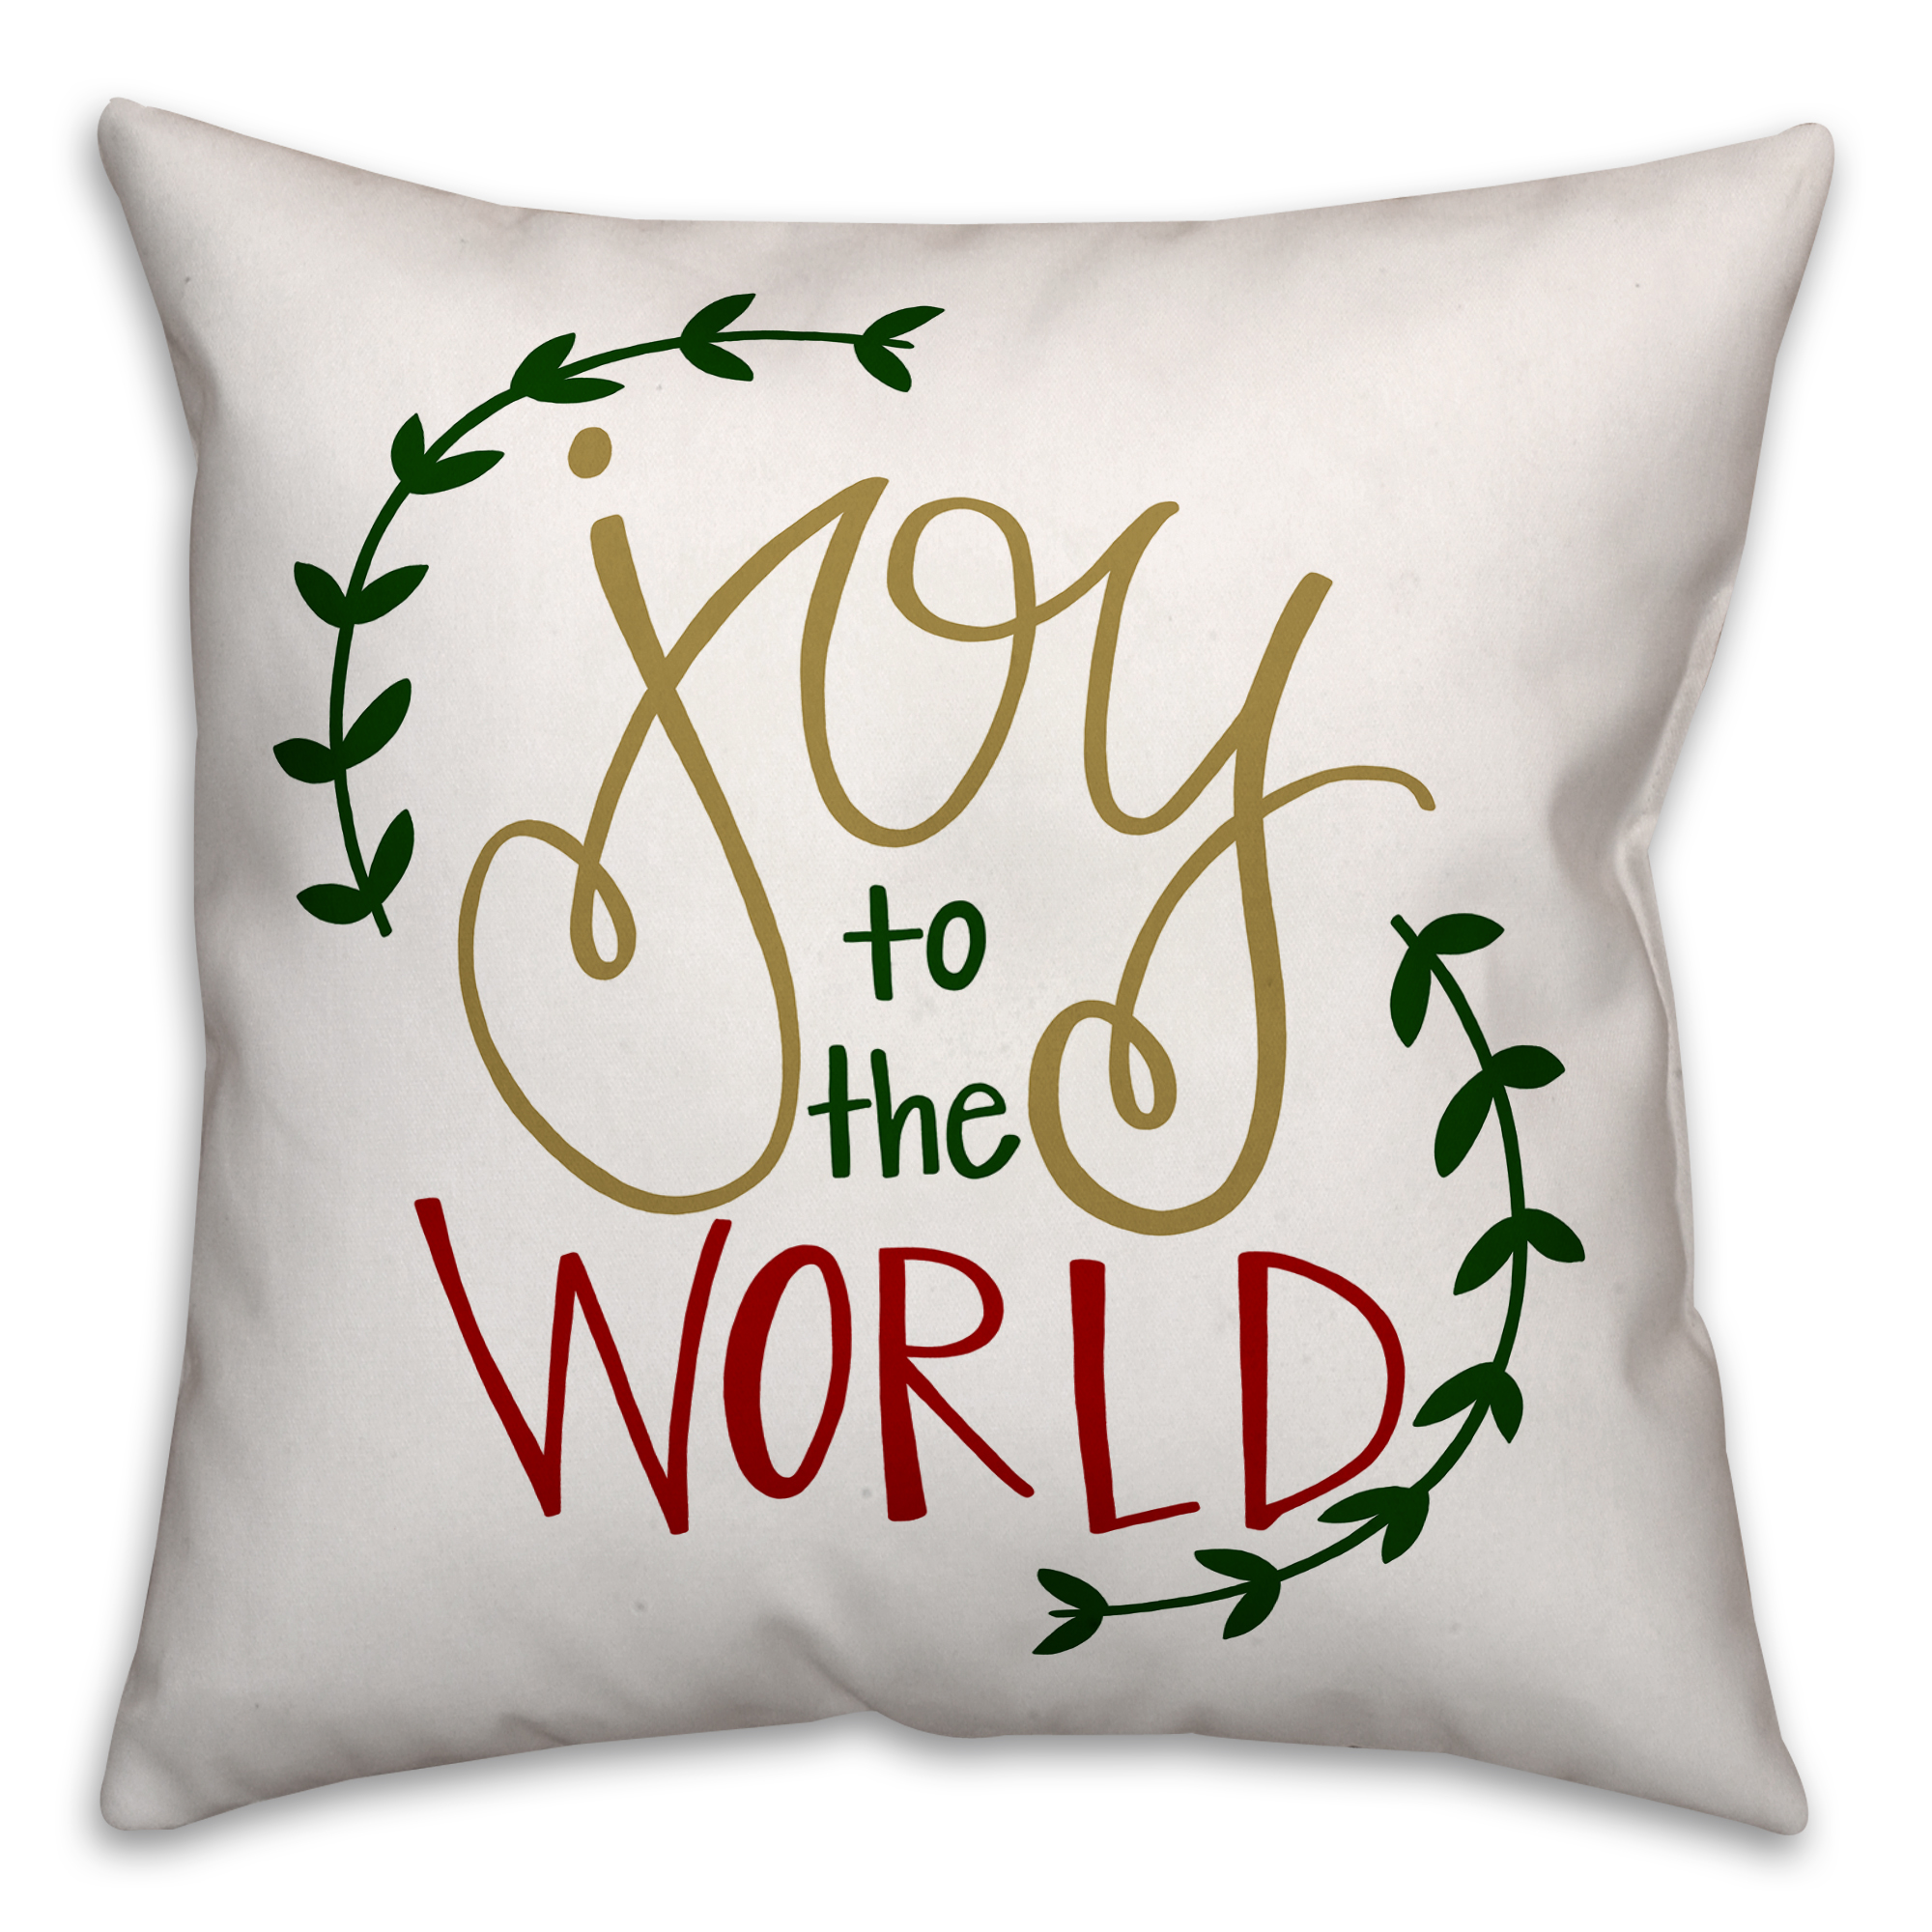 Joy to the World 16x16 Spun Poly Pillow